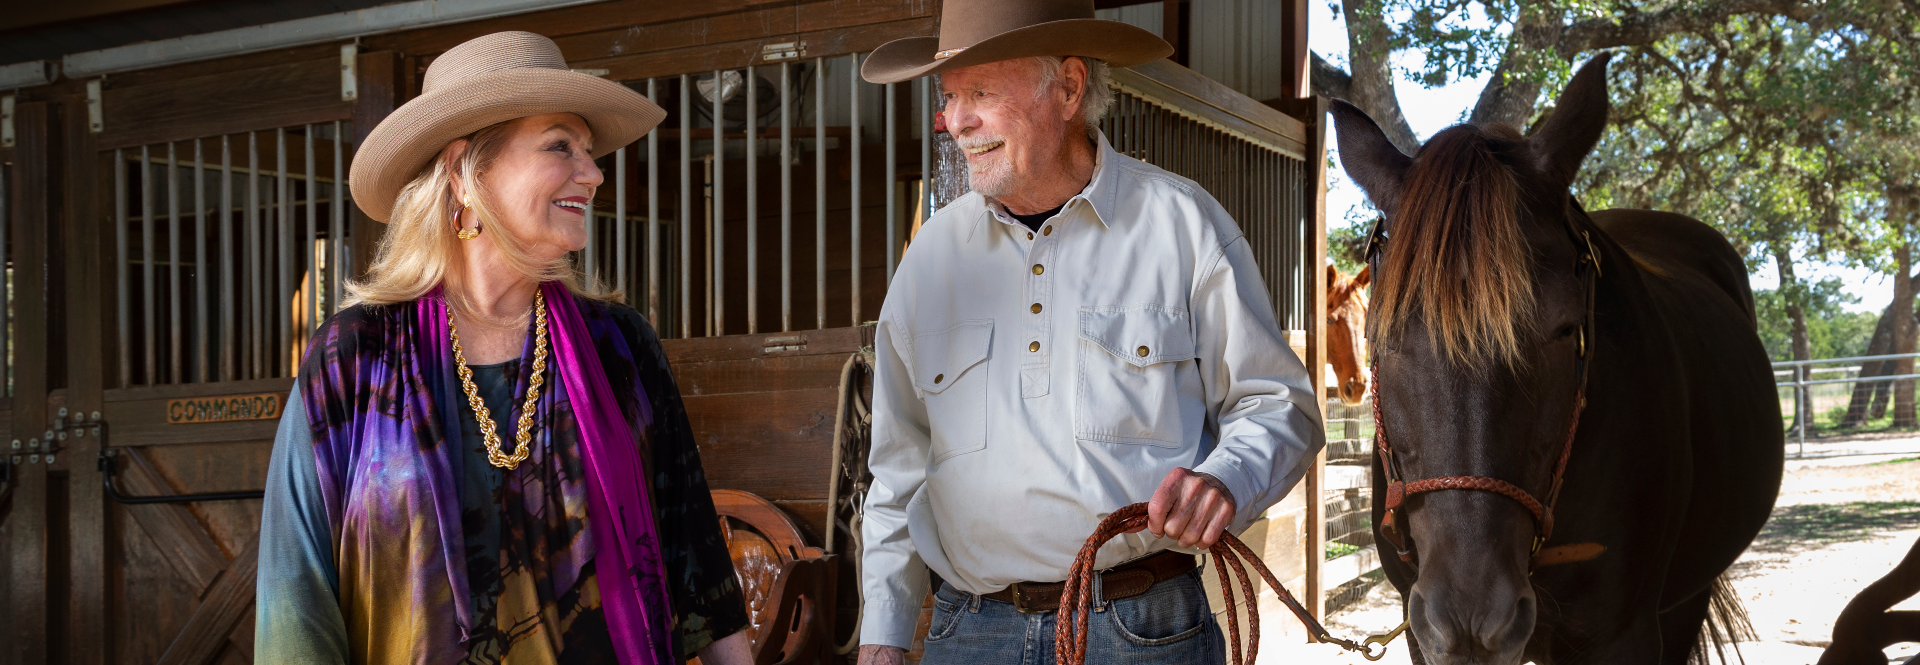 Deborah and Bill Keyes support the advancement of veterinary research through a planned gift, marked as one of the largest contributions to the Lead by Example campaign.